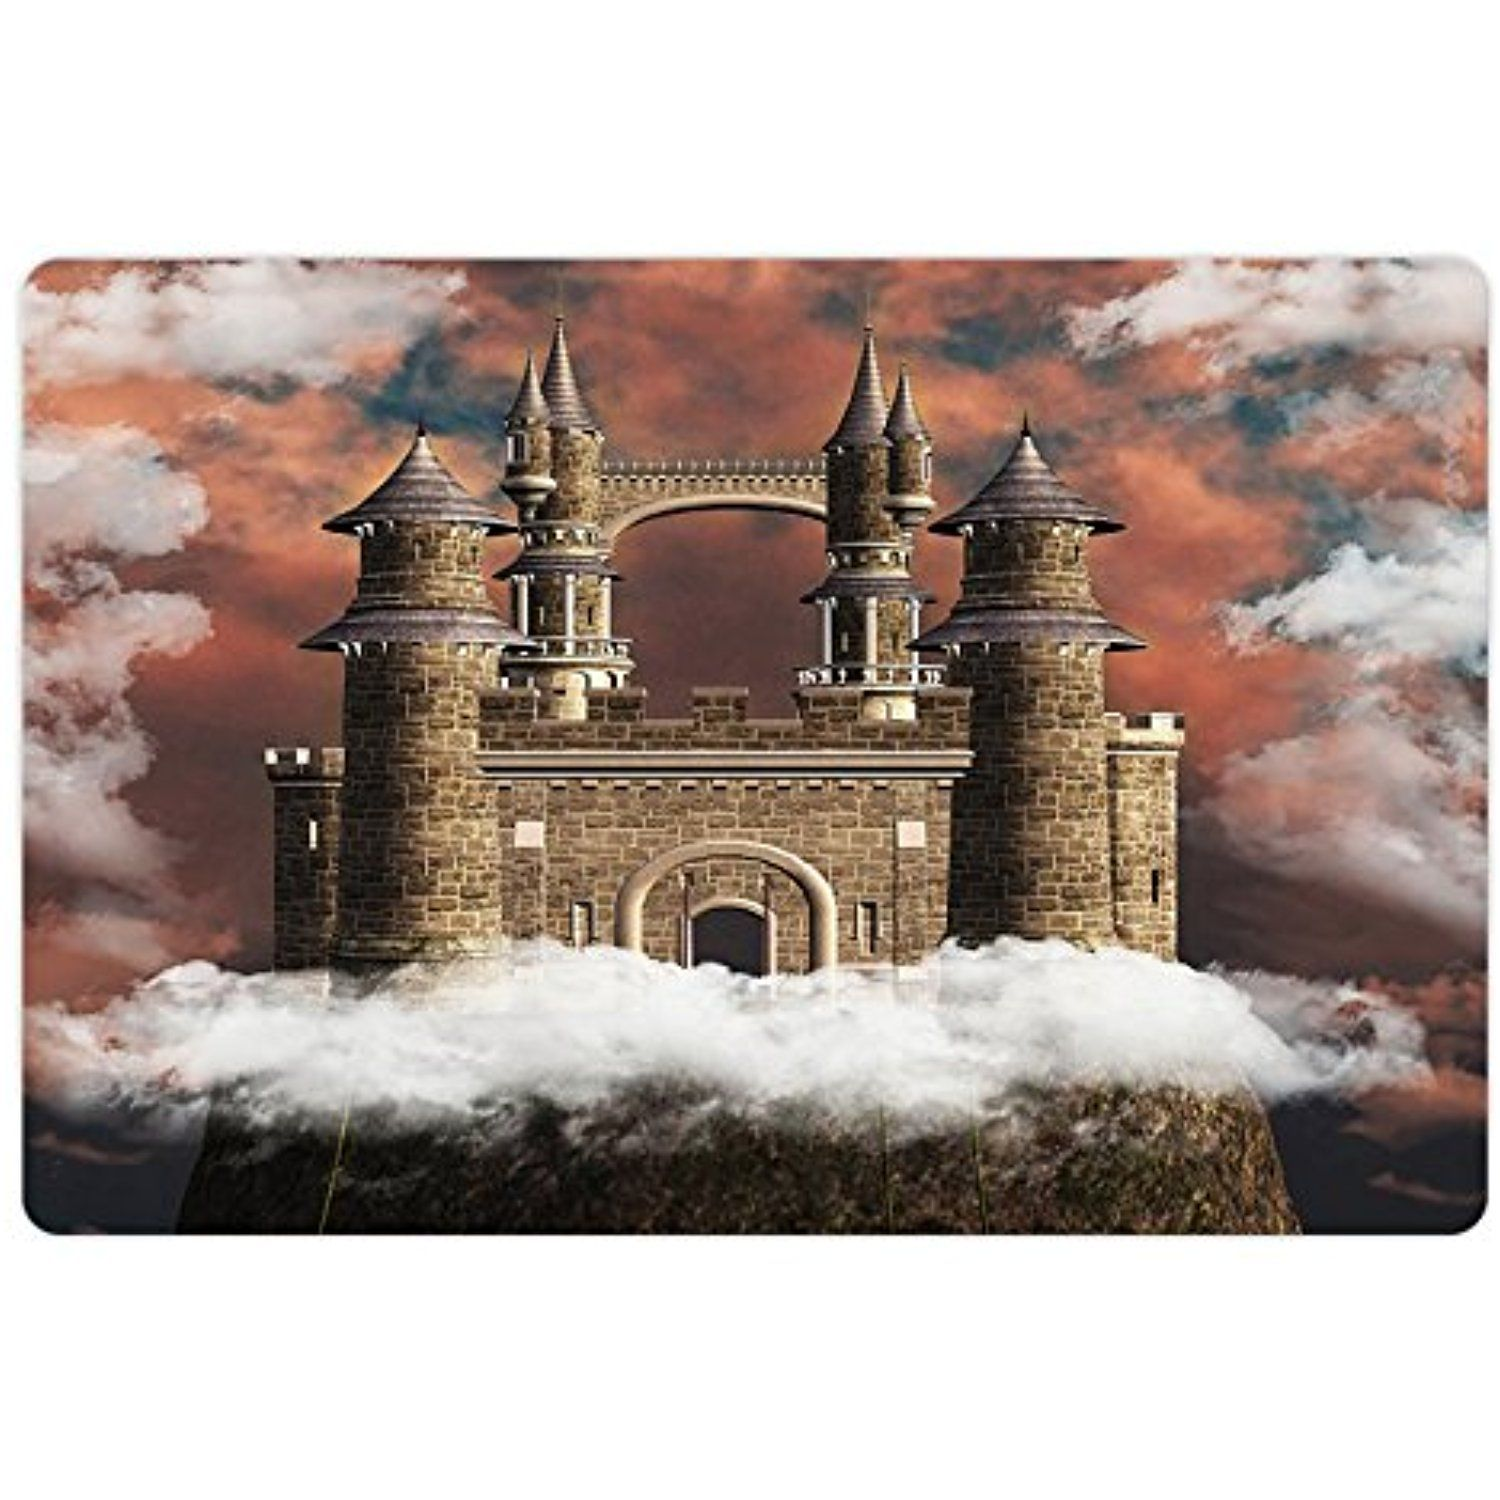 Medieval Pet Mats For Food And Water By Lunarable Fairy Magic Castle On The Hill Middle Age Tales Unusual Facts In Dog Feeding Castle On The Hill Unusual Facts